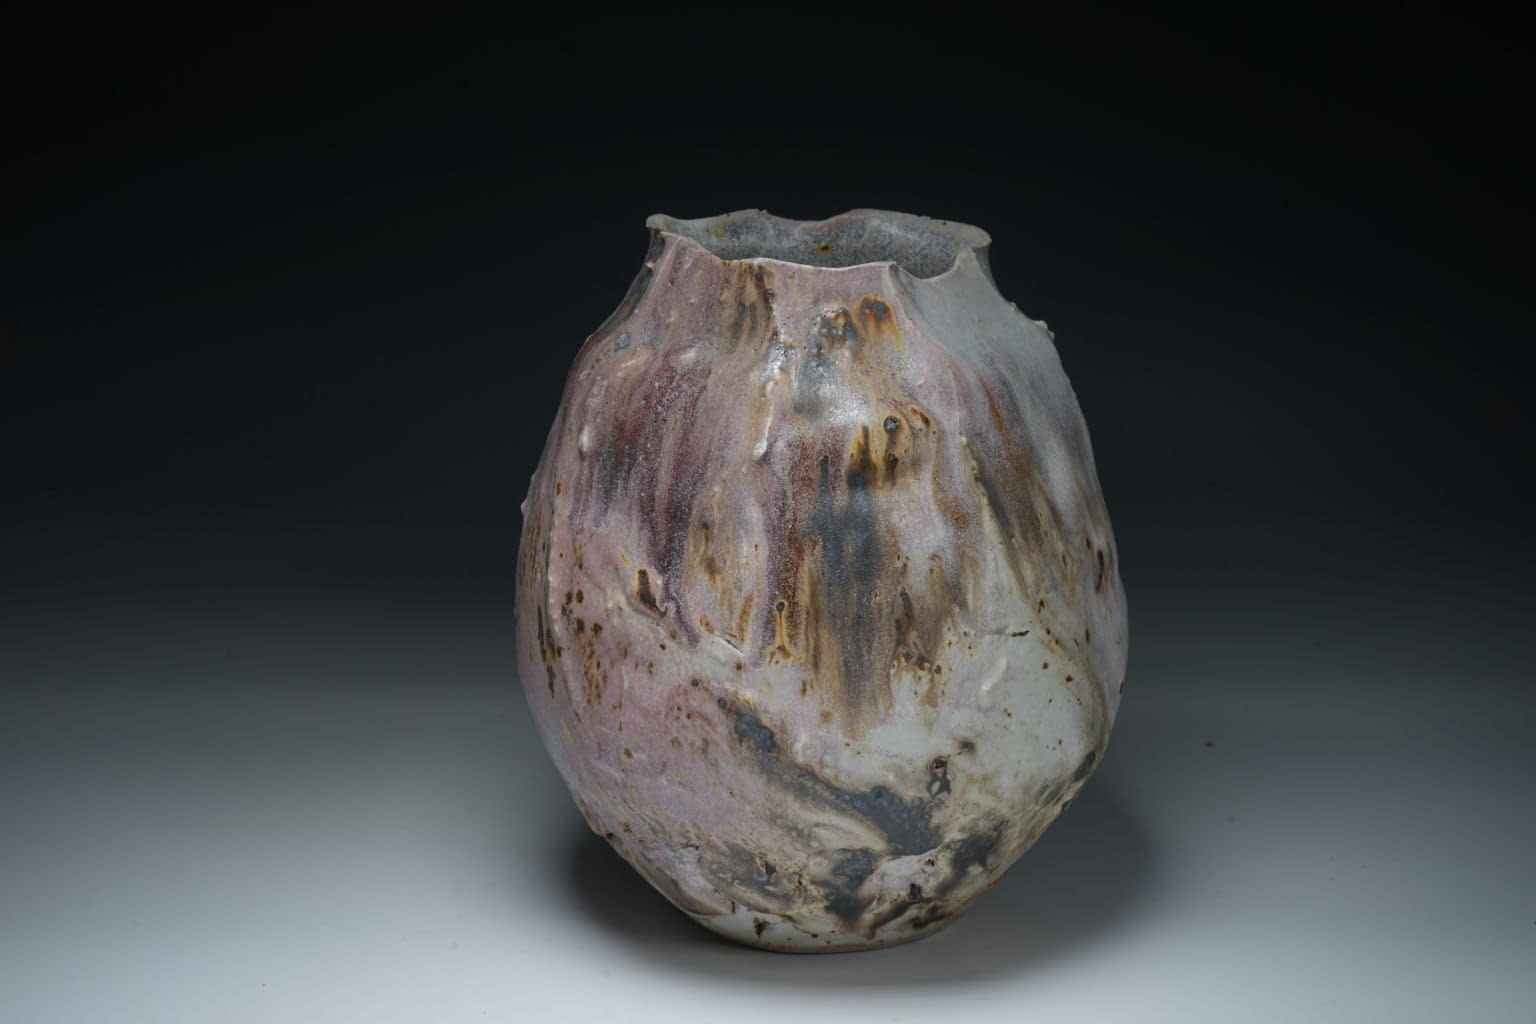 Thrown and altered abstract vase